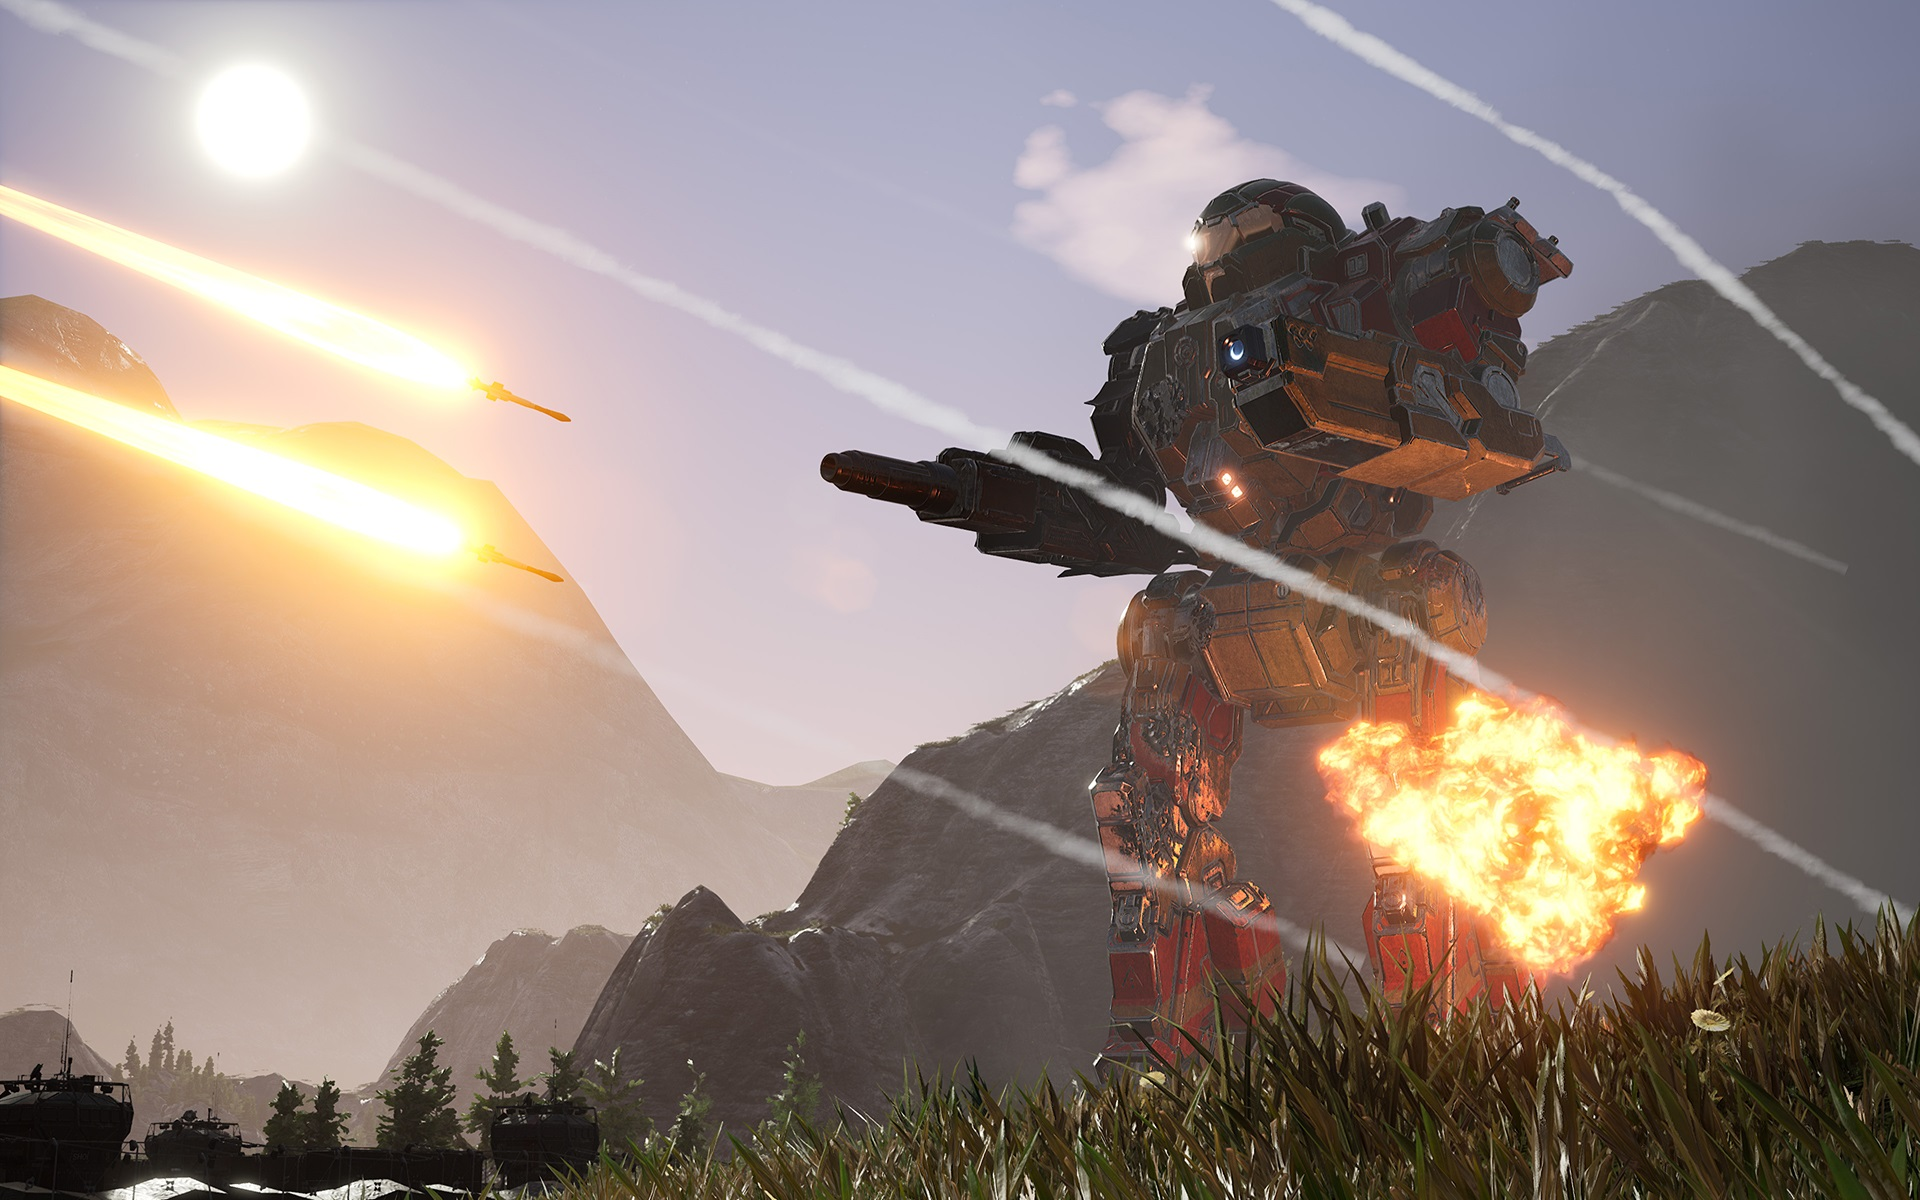 MechWarrior 5 suffers a delay, set for December 2019 launch on Epic Games Store screenshot